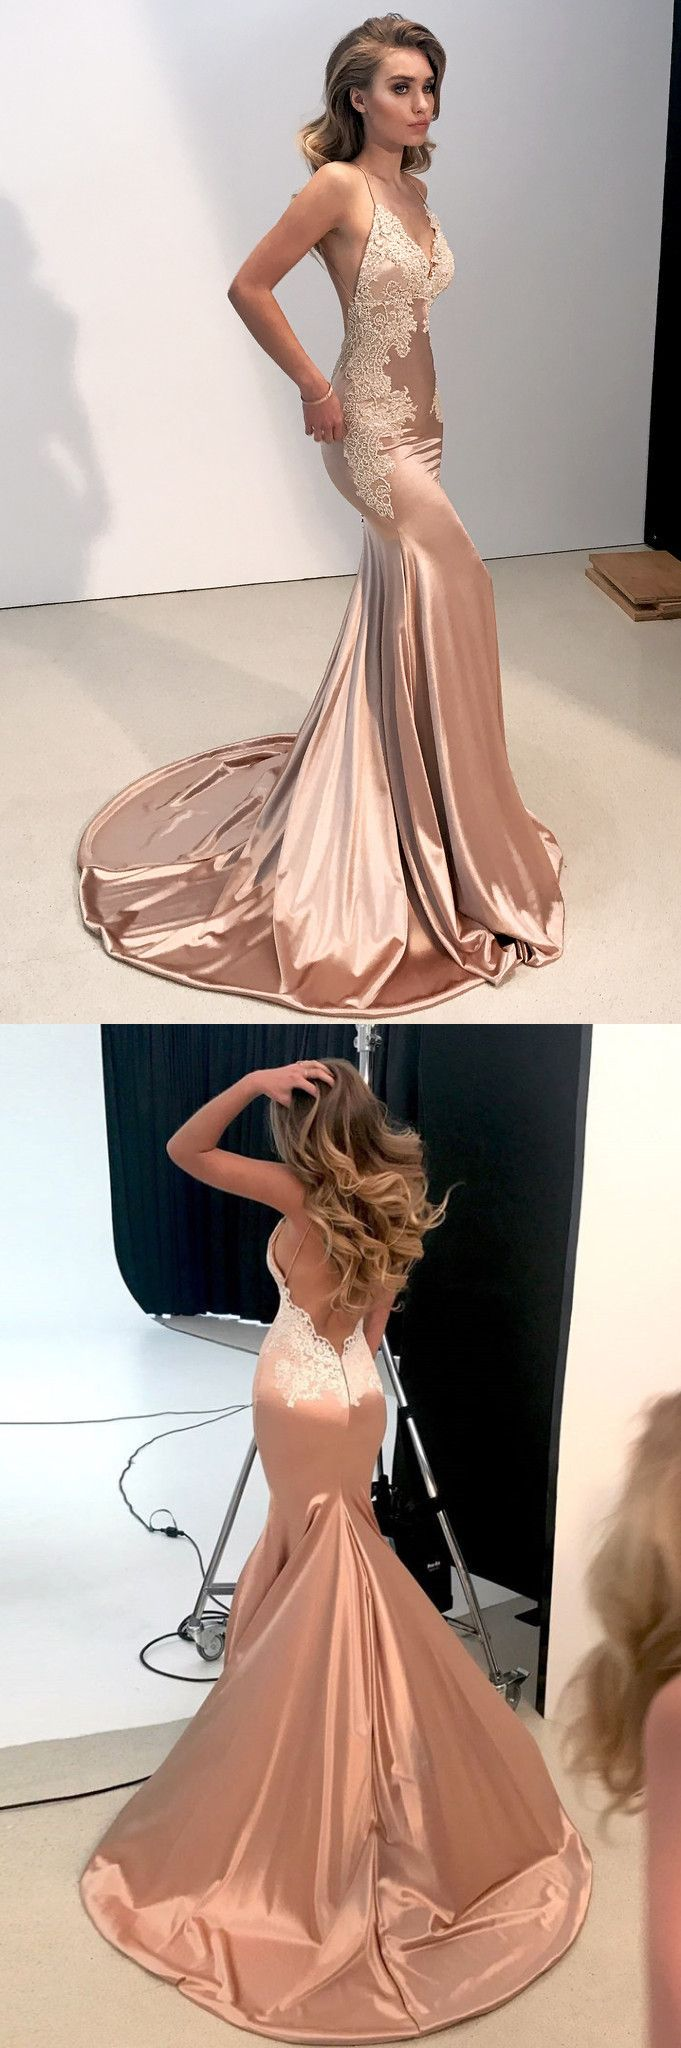 Sexy Straps V Neck Mermaid Long Evening Dress with Open Back #EveningDresses